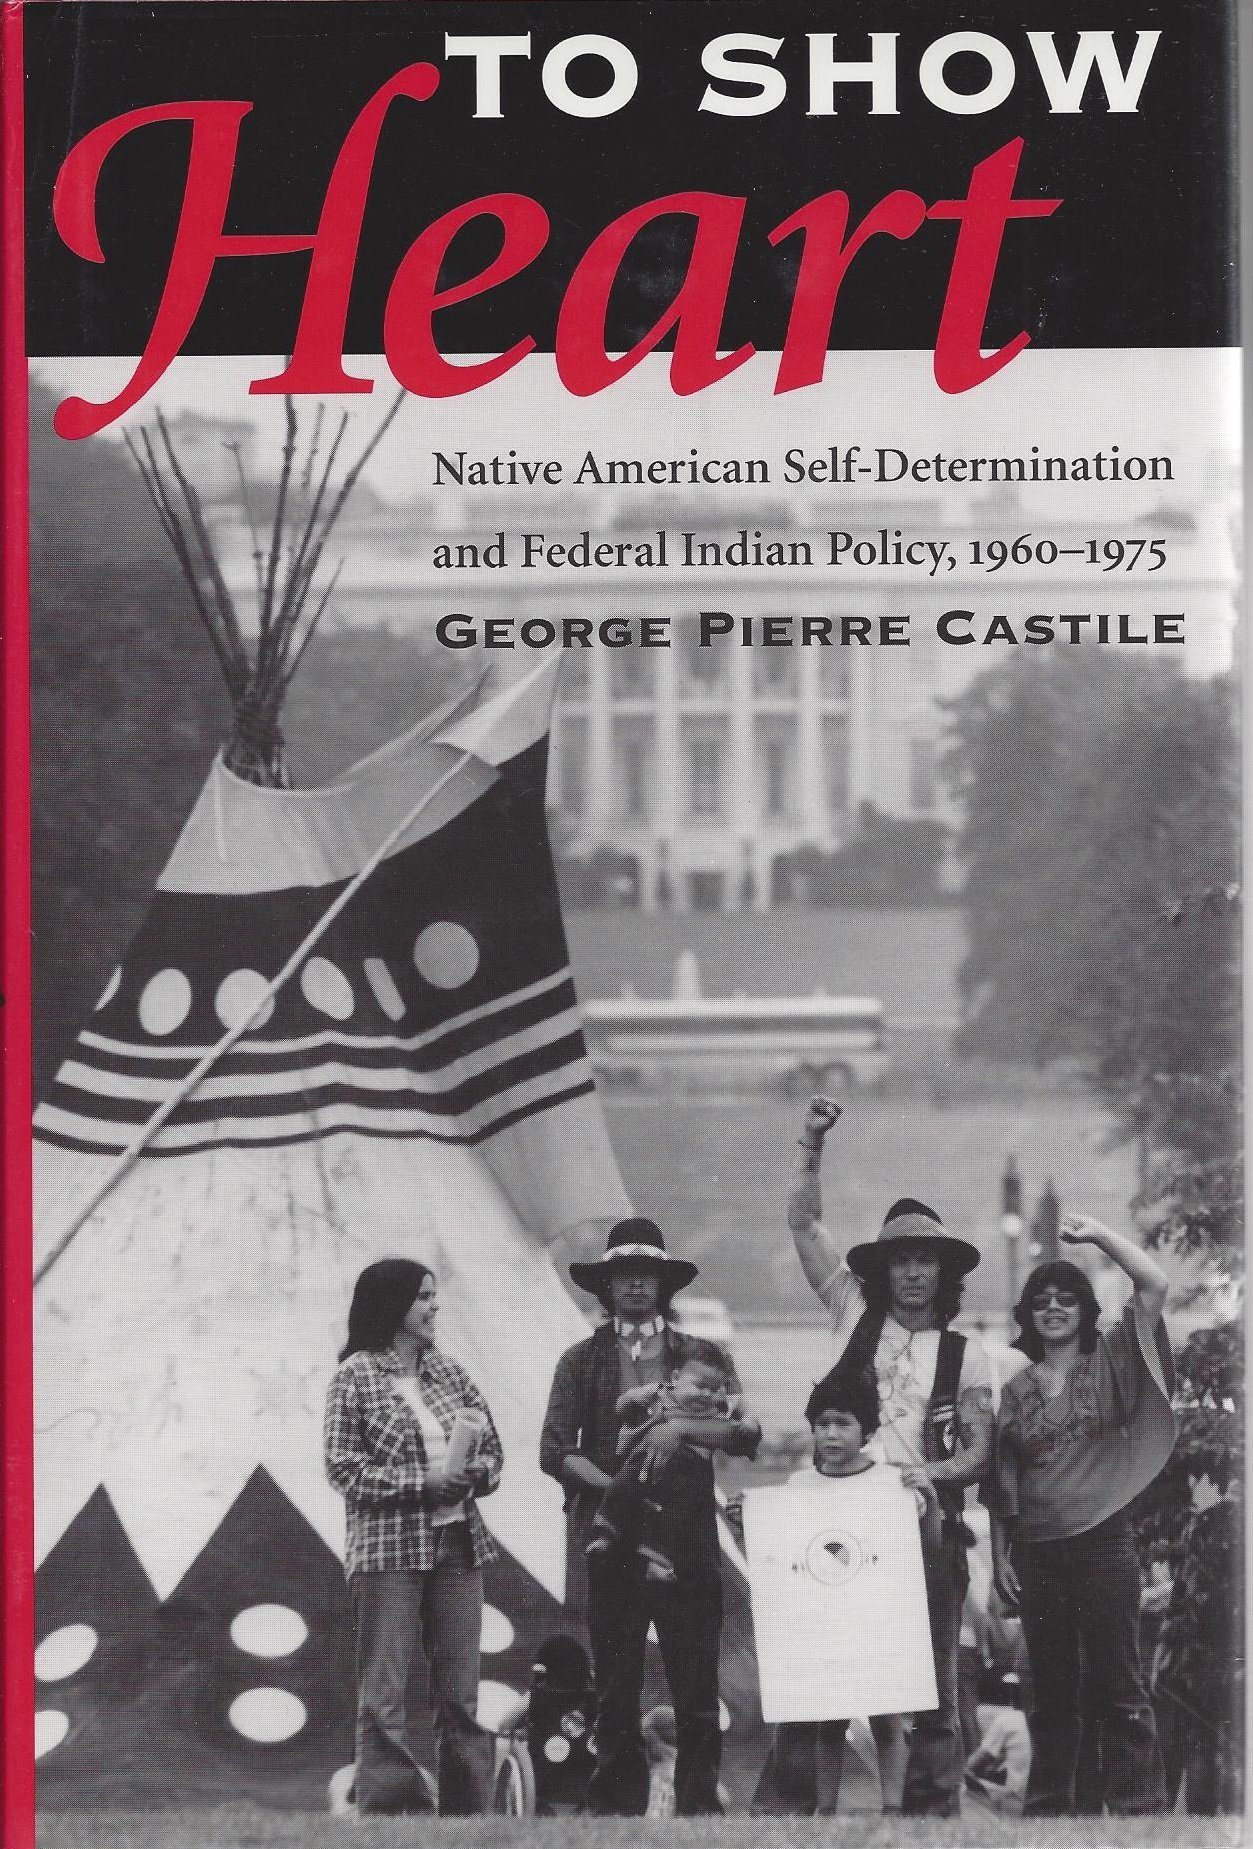 To Show Heart: Native American Self-Determination and Federal Indian Policy, 1960-1975, Castile, George Pierre